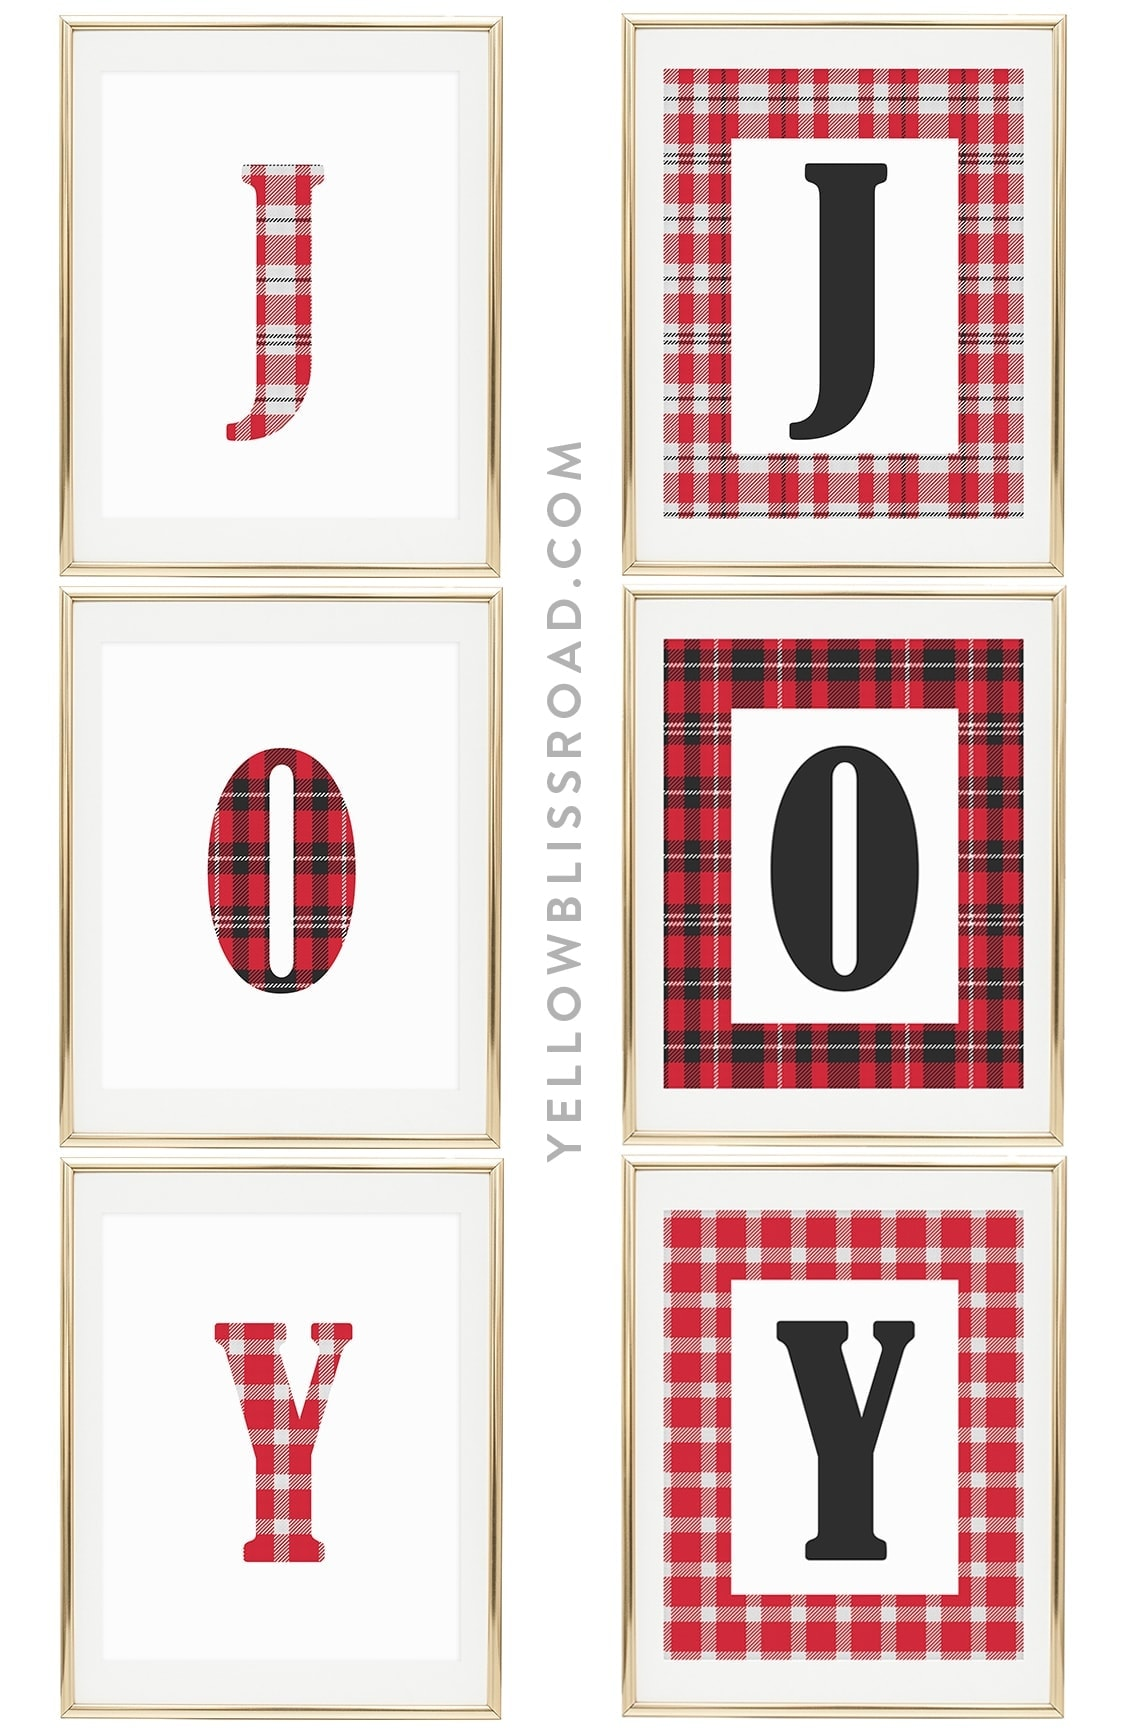 Spread Christmas JOY! with these Free Christmas Printables | Christmas decorating